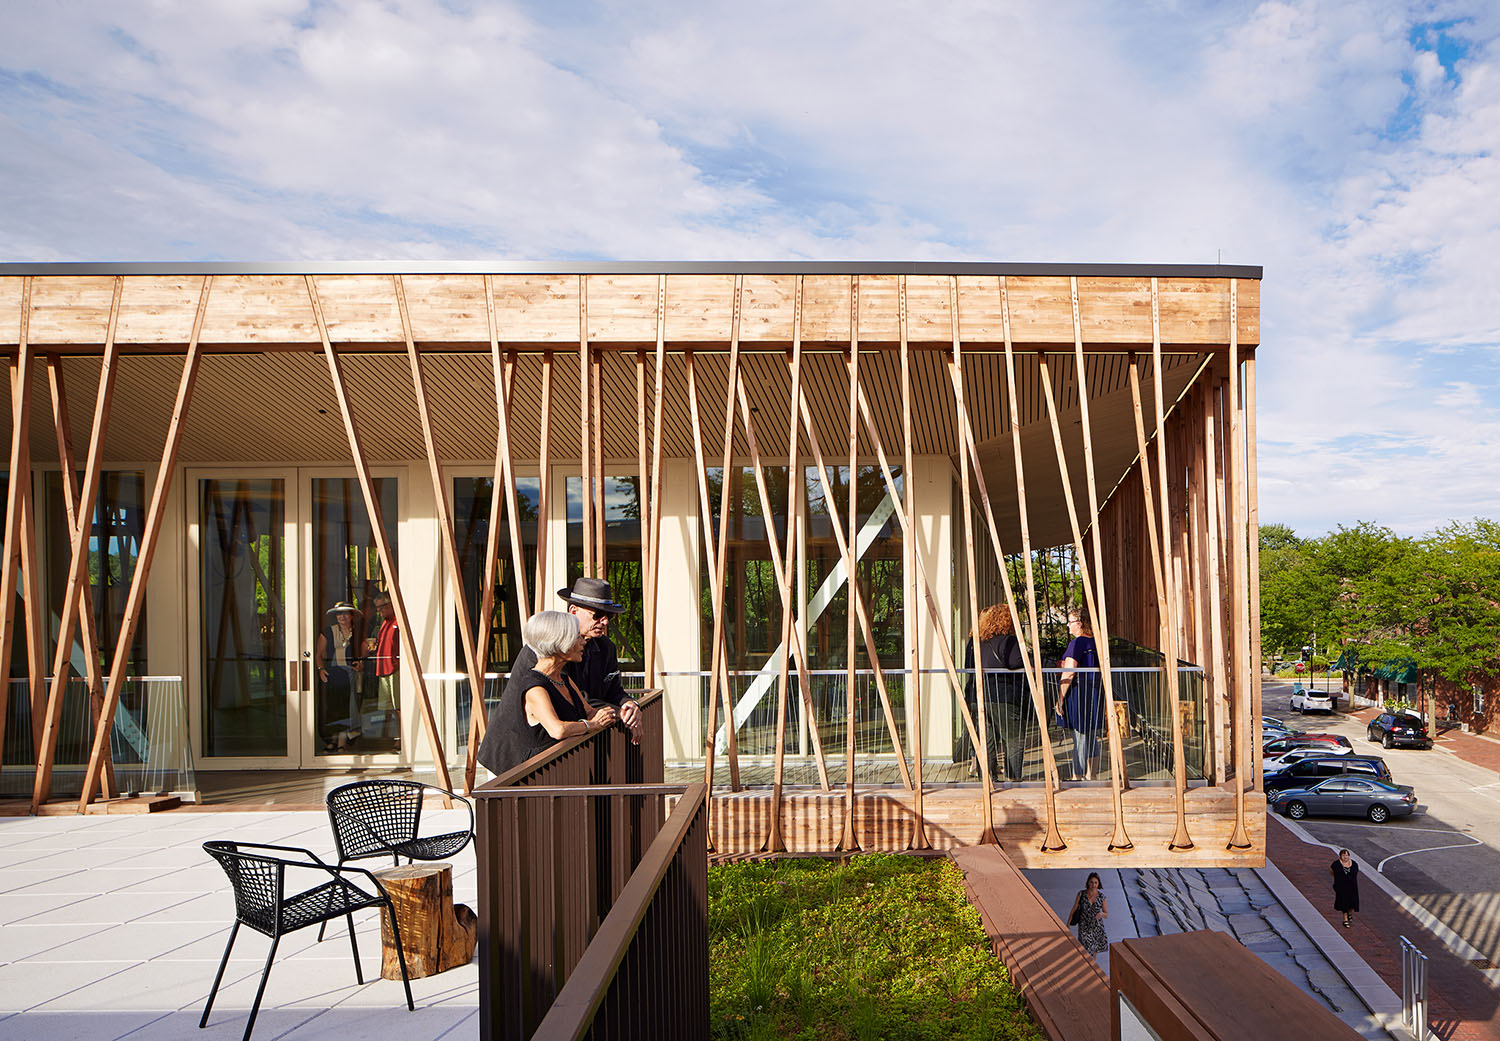 The Canopy Walk is hung from wooden battens performing in tension, and their splayed geometry animates the facade.